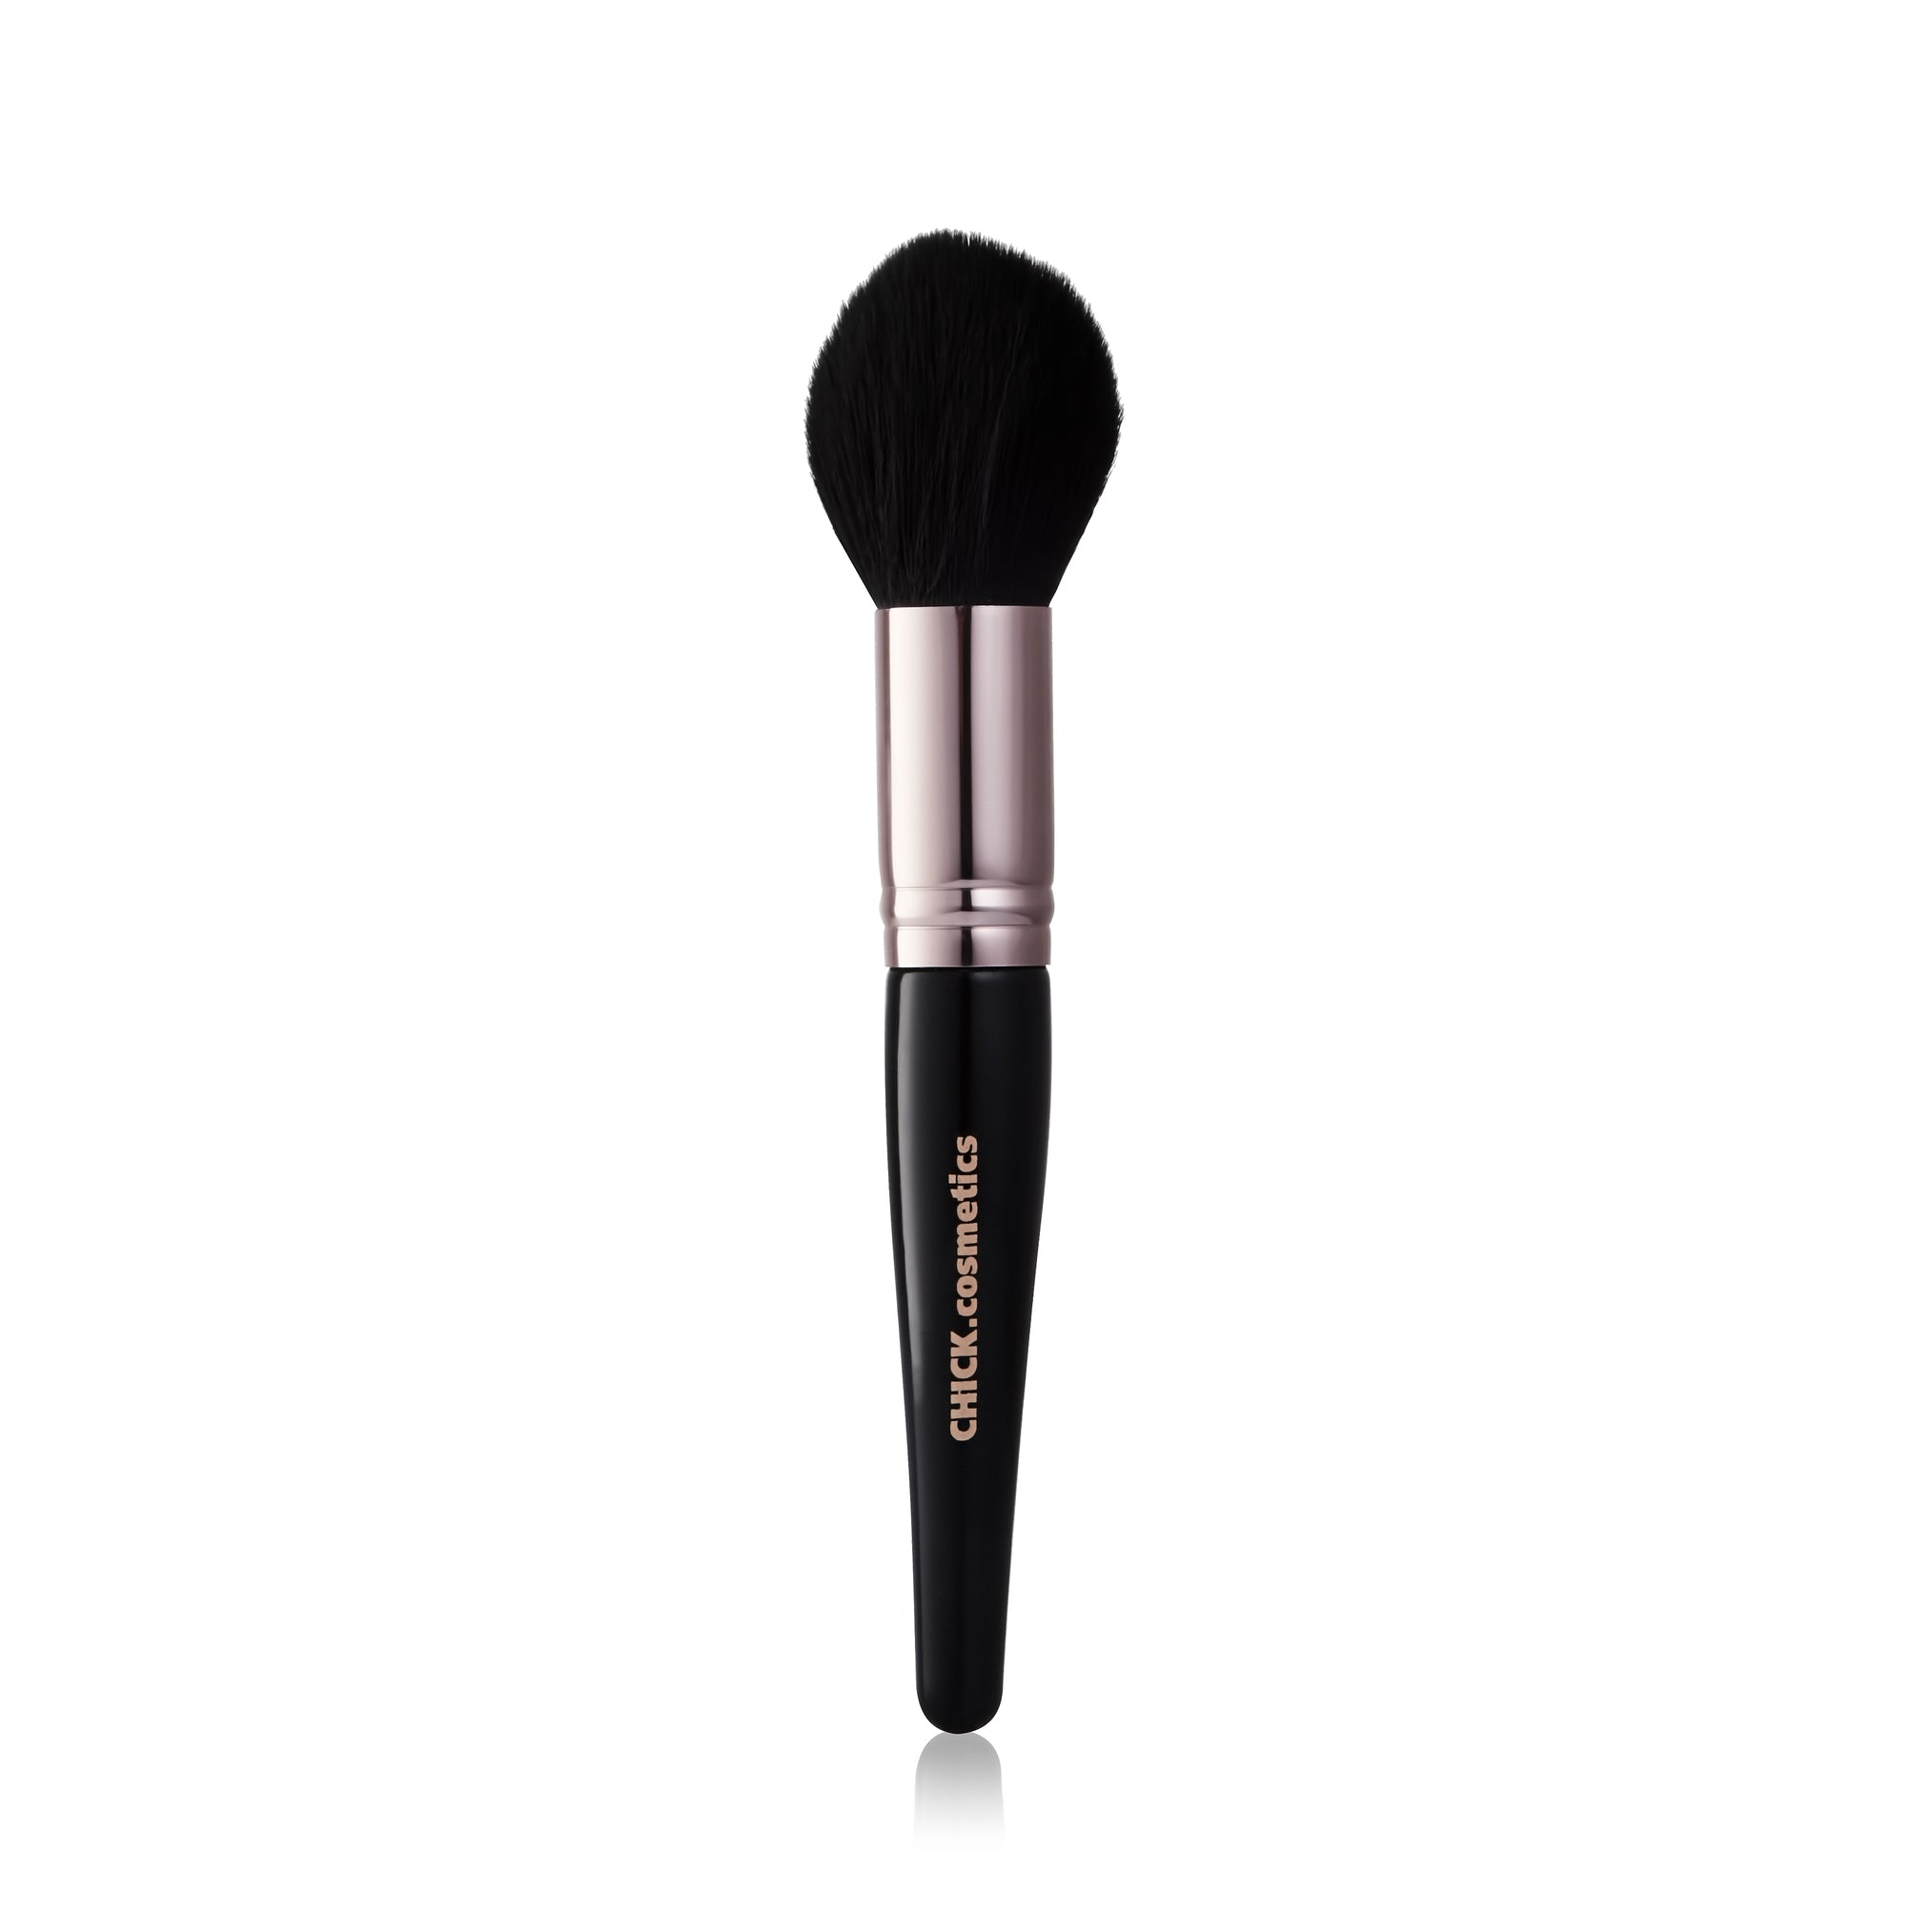 BAKED! Flawless Powder Brush